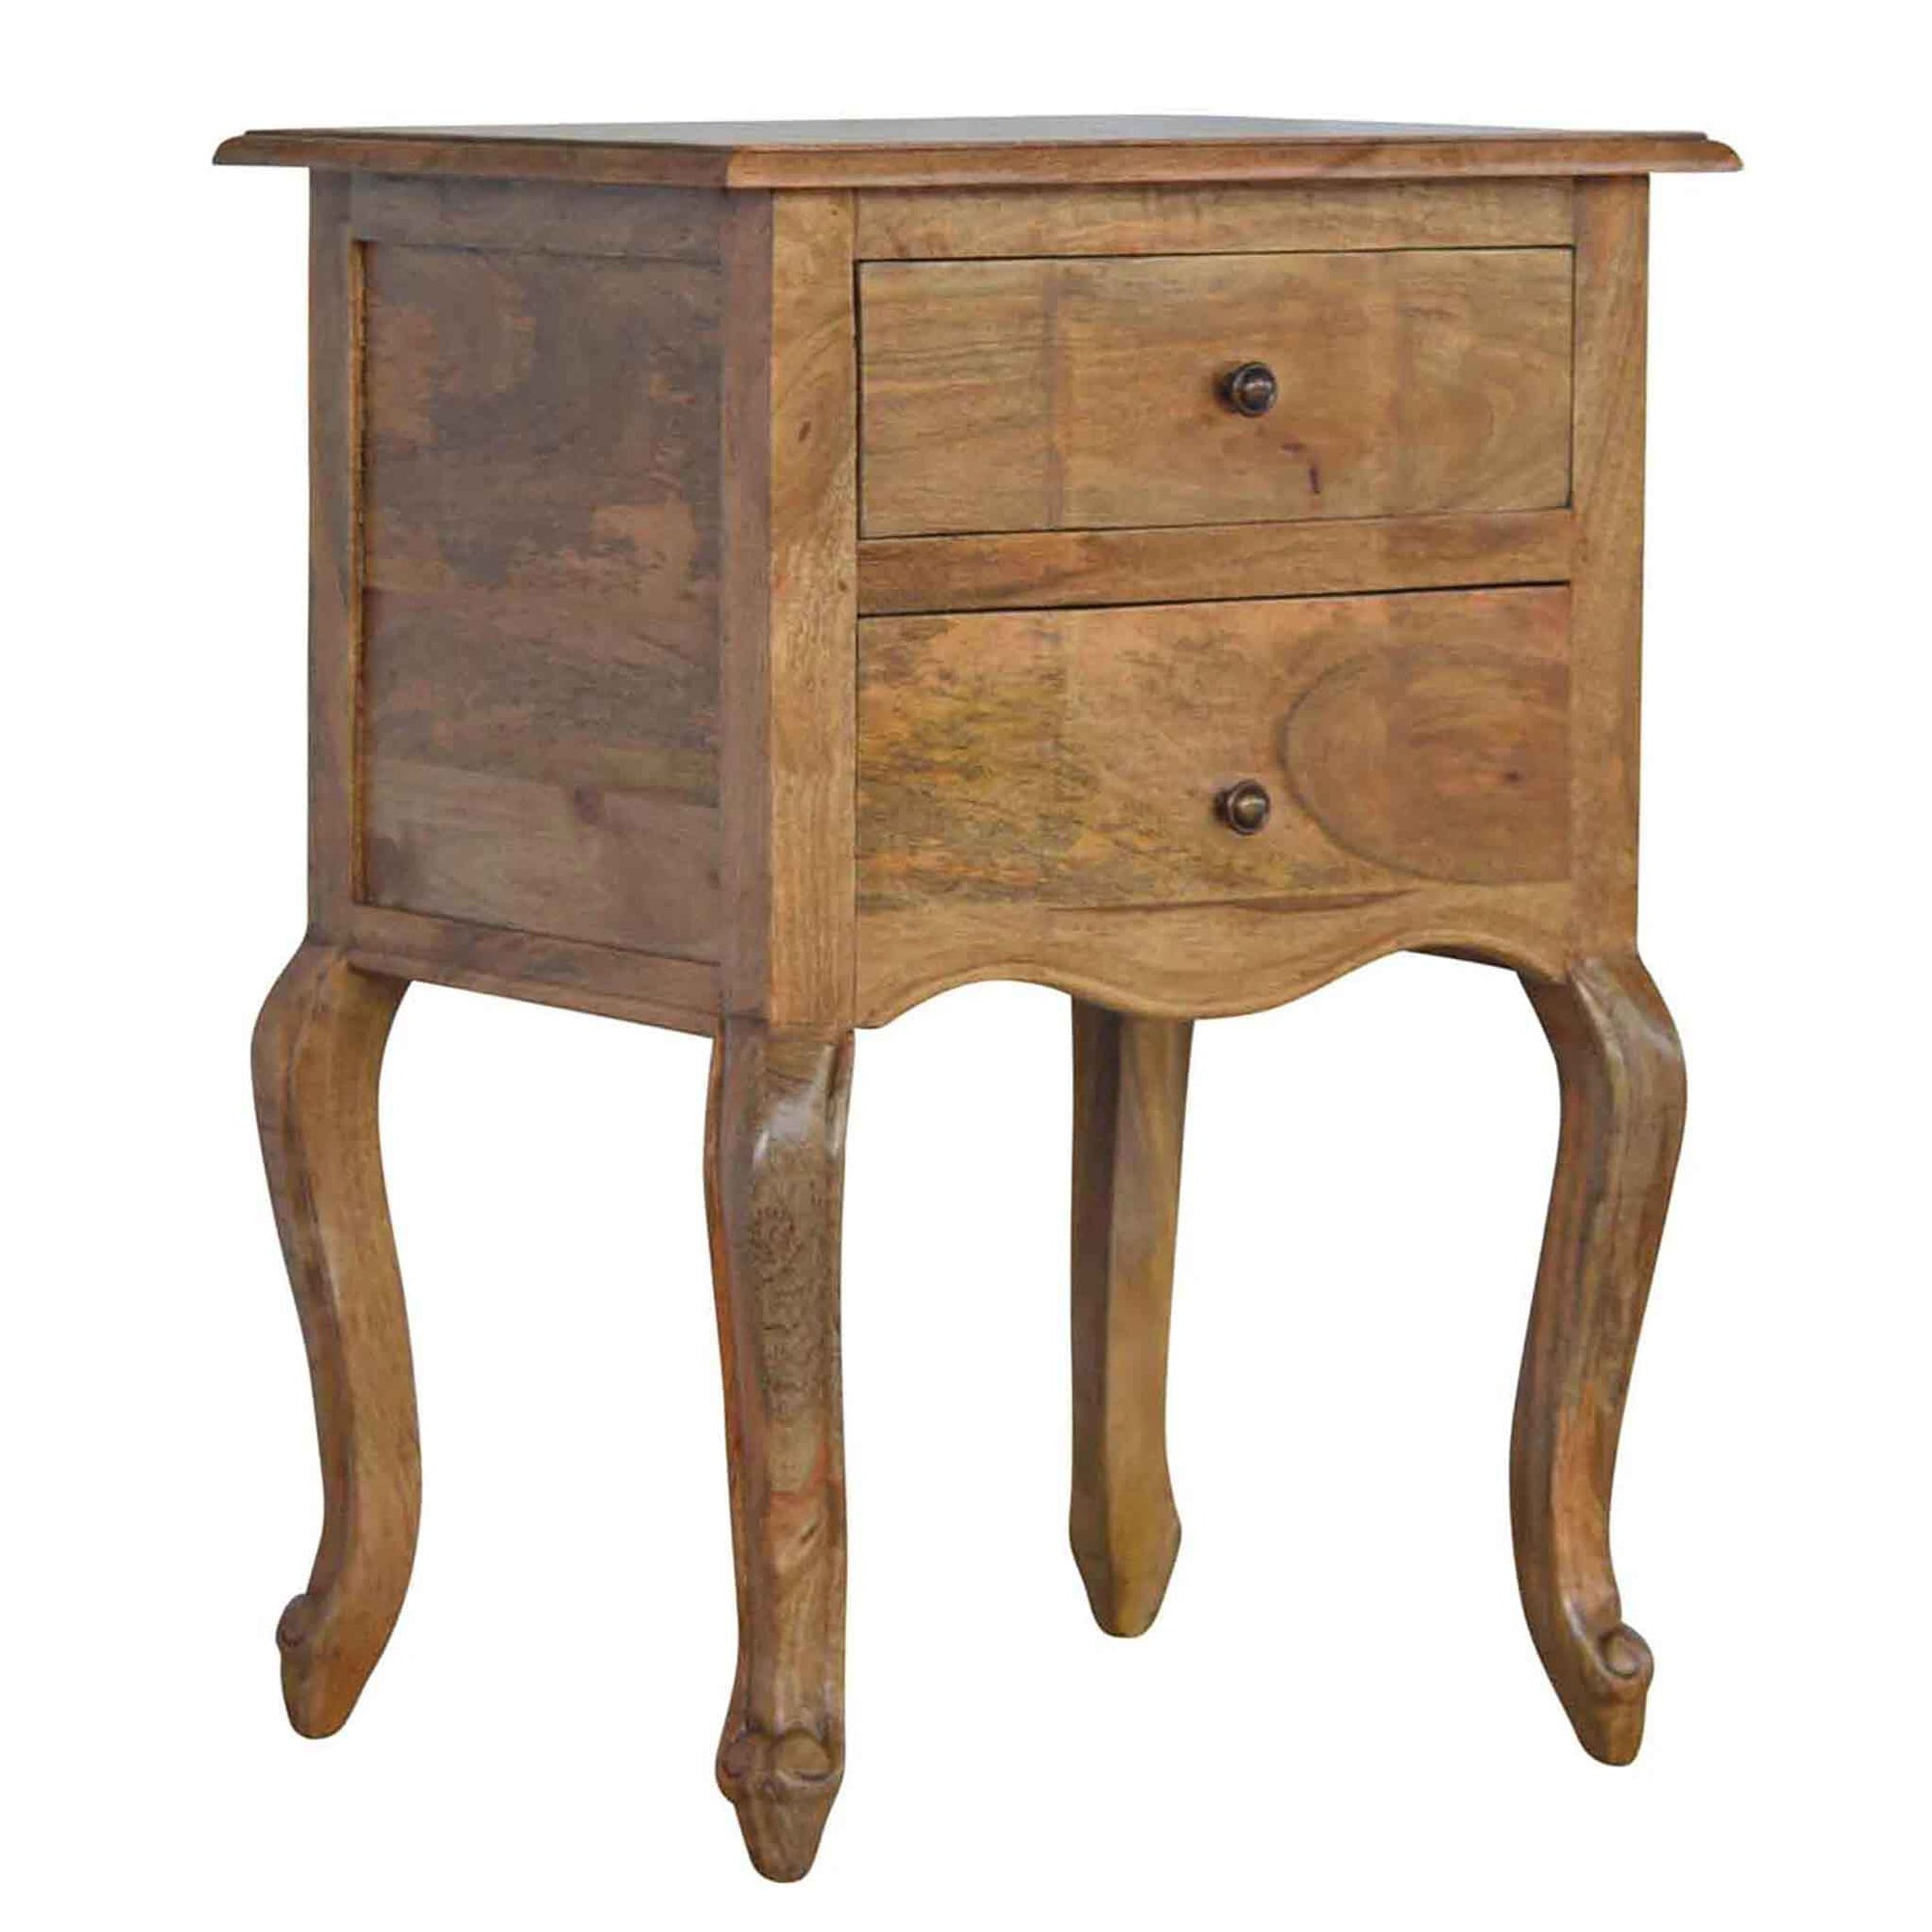 The Artisan French Style 2 Drawer Bedside Table from Roseland Furniture